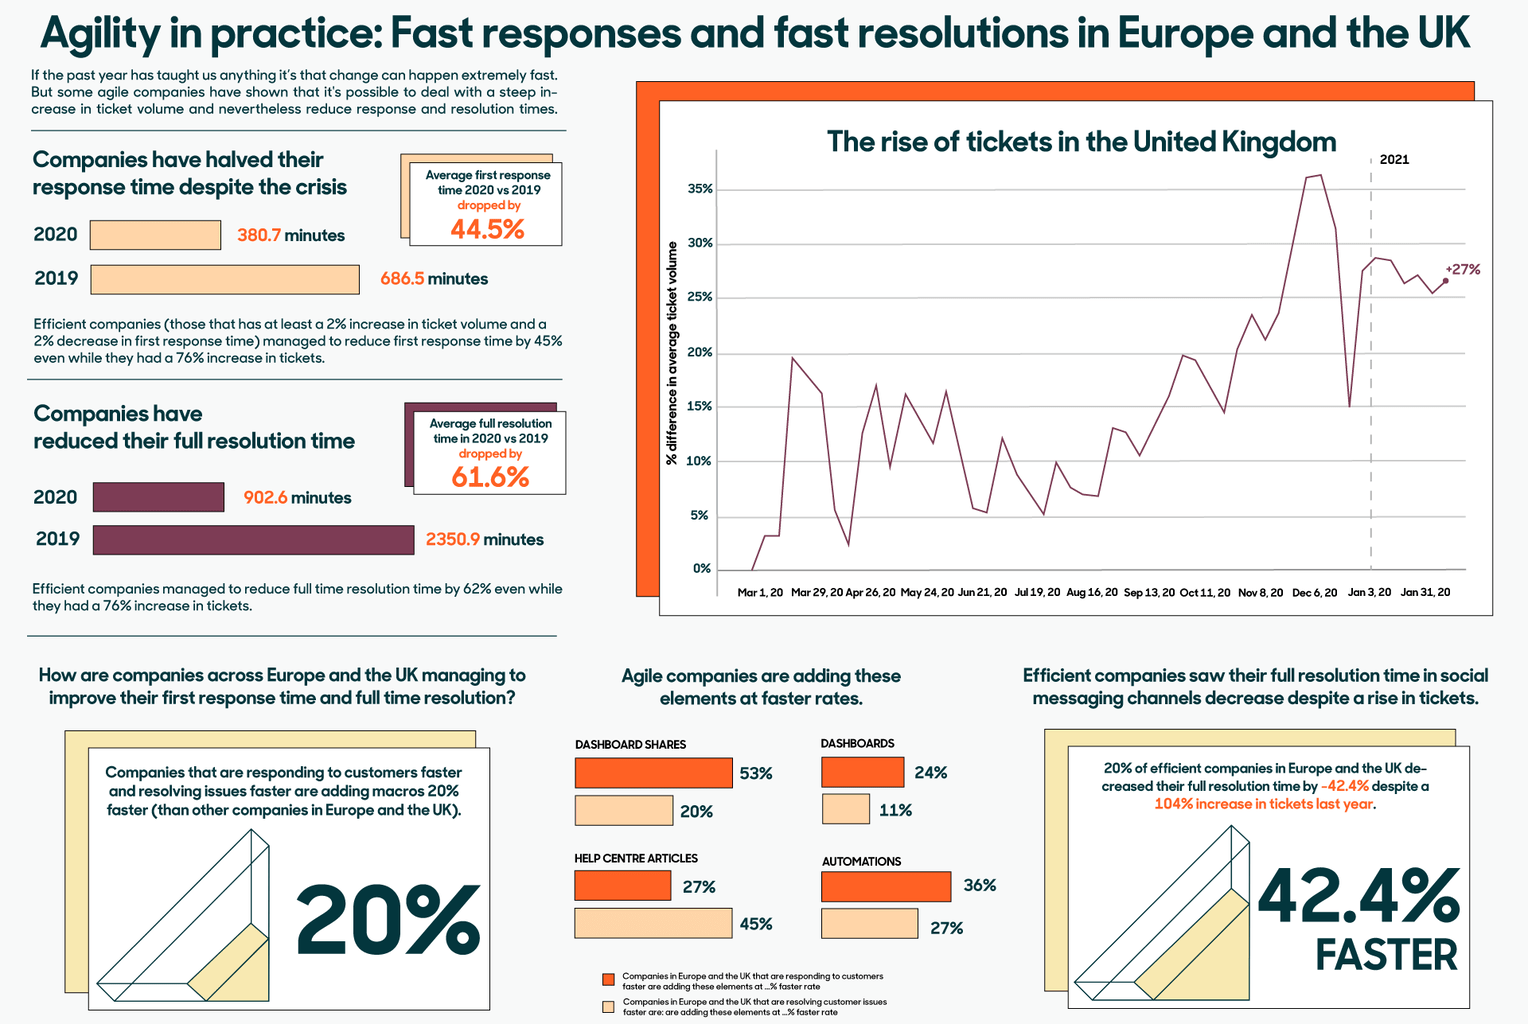 Agility in Practice: fast responses and fast resolutions in the UK and Europe